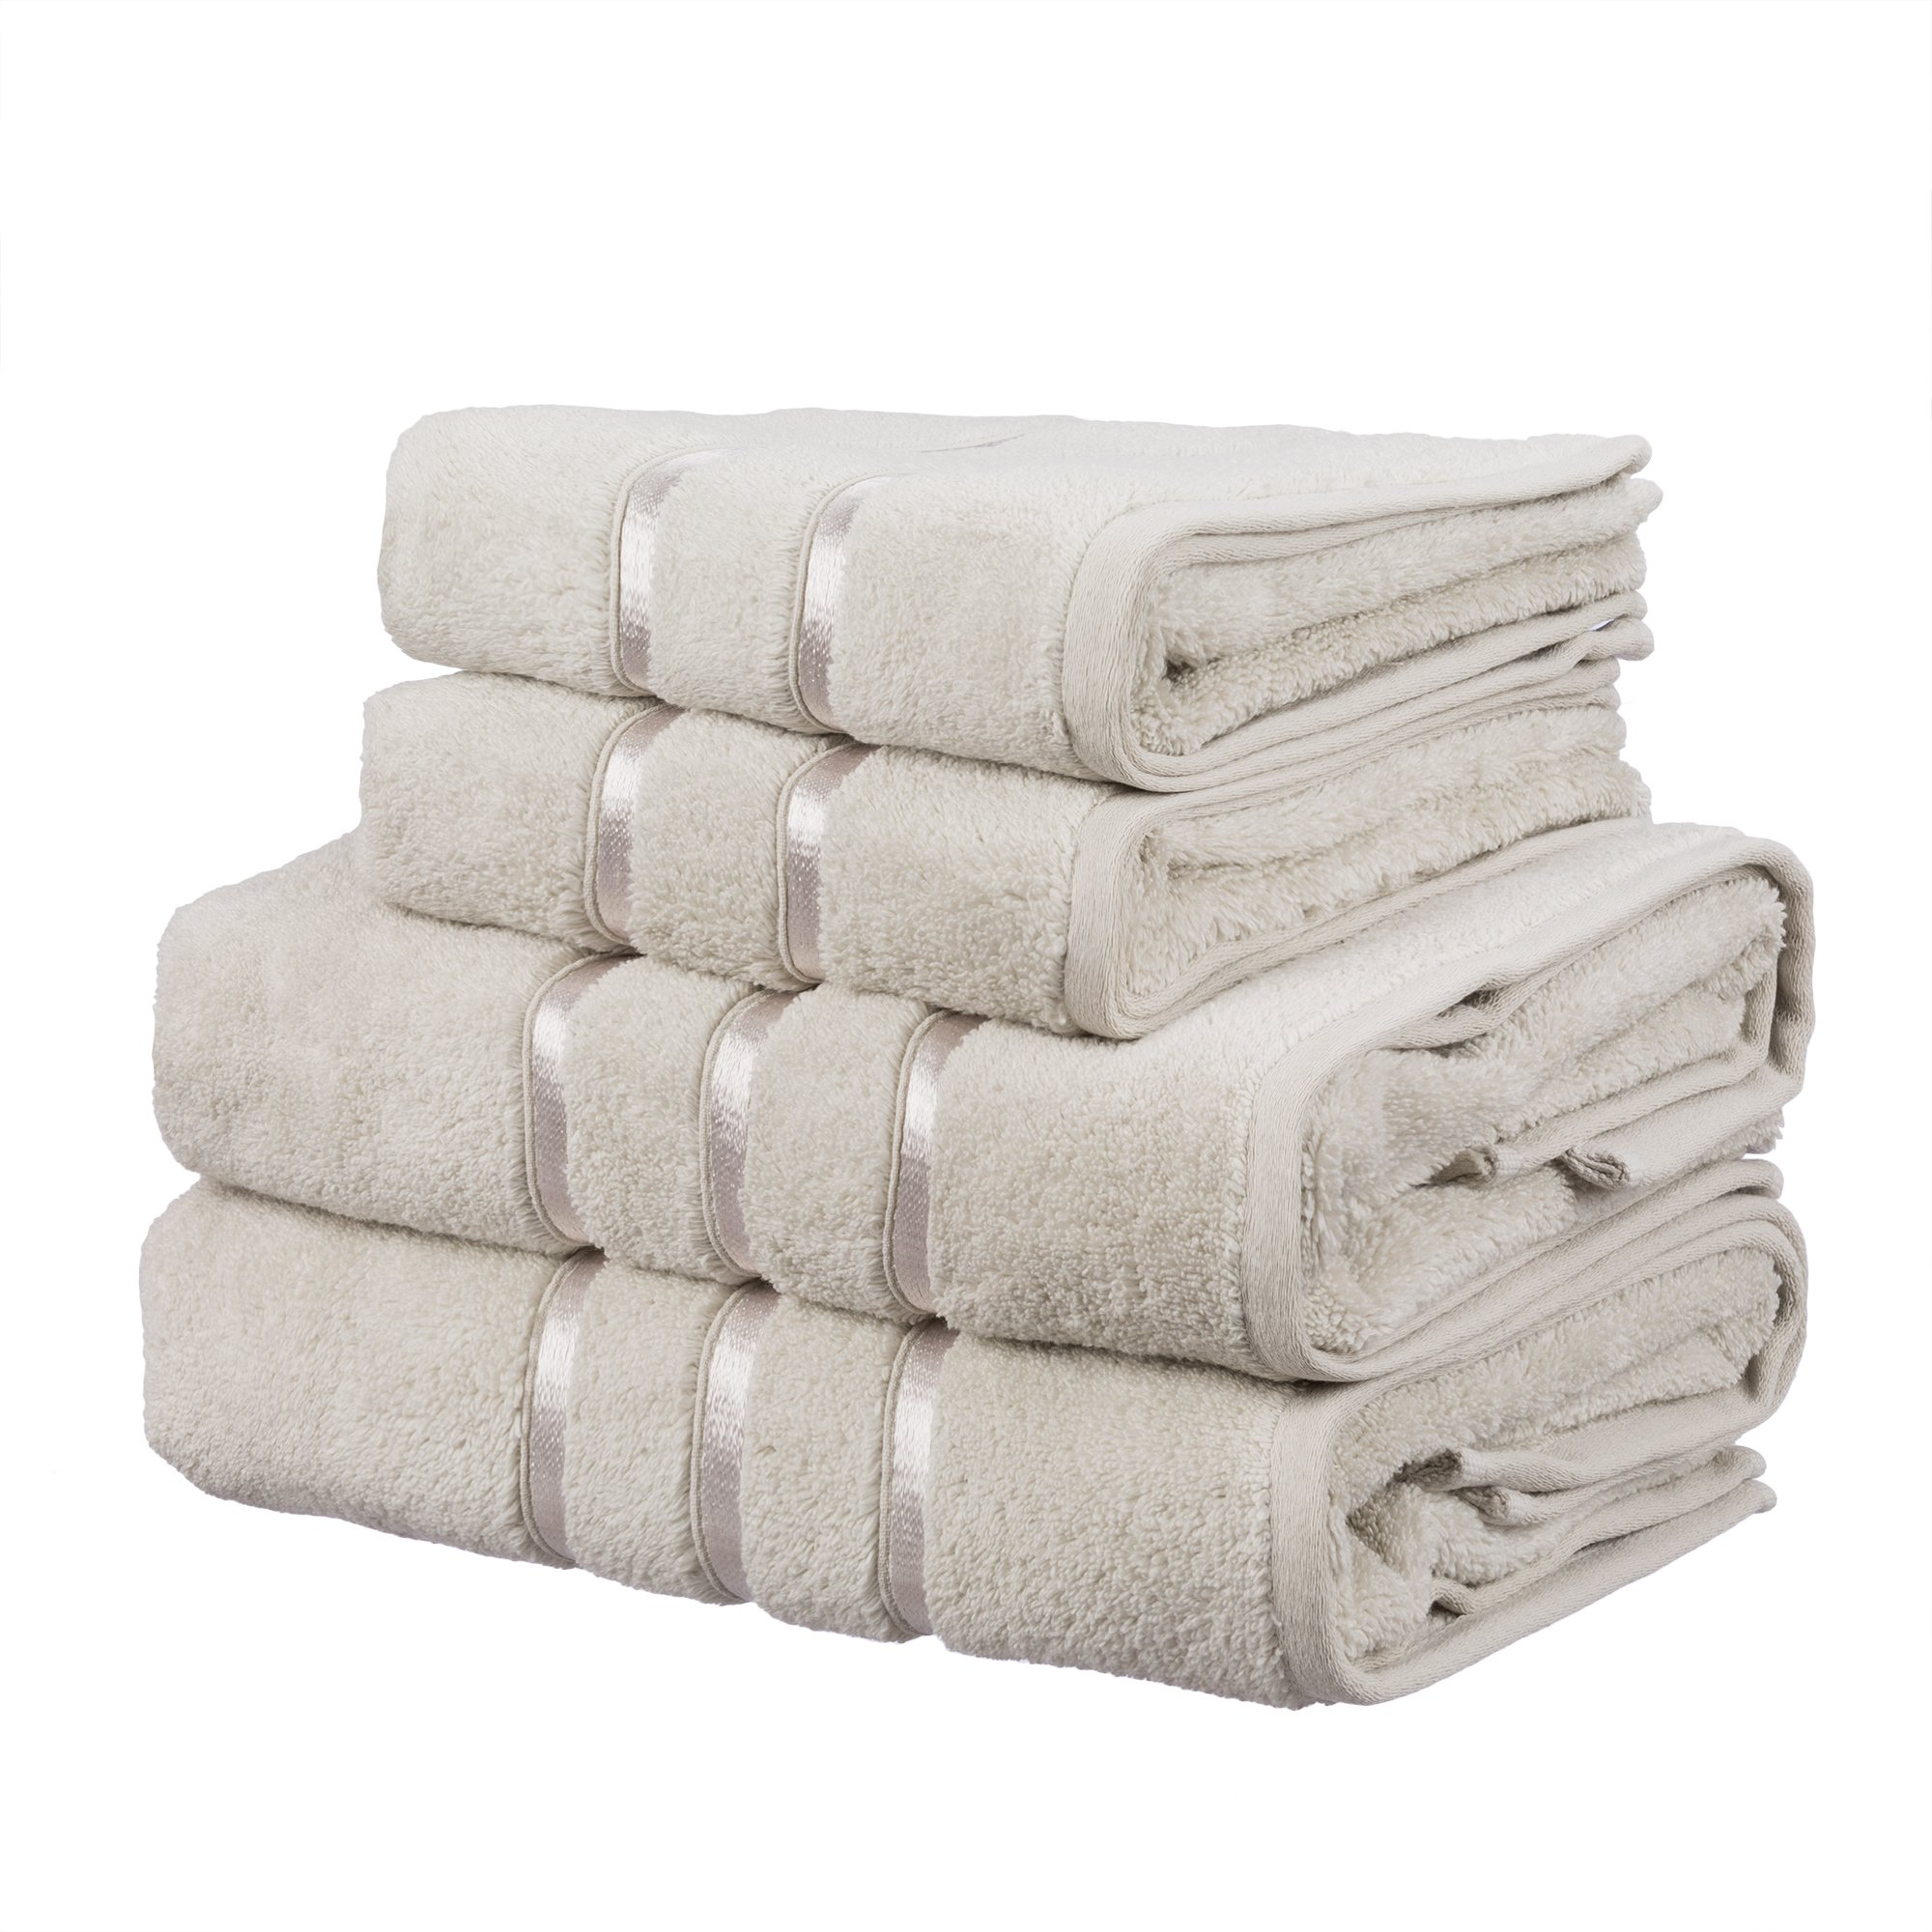 Hobby Dolce Luxury 100% Turkish Cotton Towel 4-Piece Set –5-Star Hotel & Spa-Grade Ultra-Absorbent & Super-Soft Bathroom Towel, 2 x Hand Towels, 2 x Bath Towels (Brown)